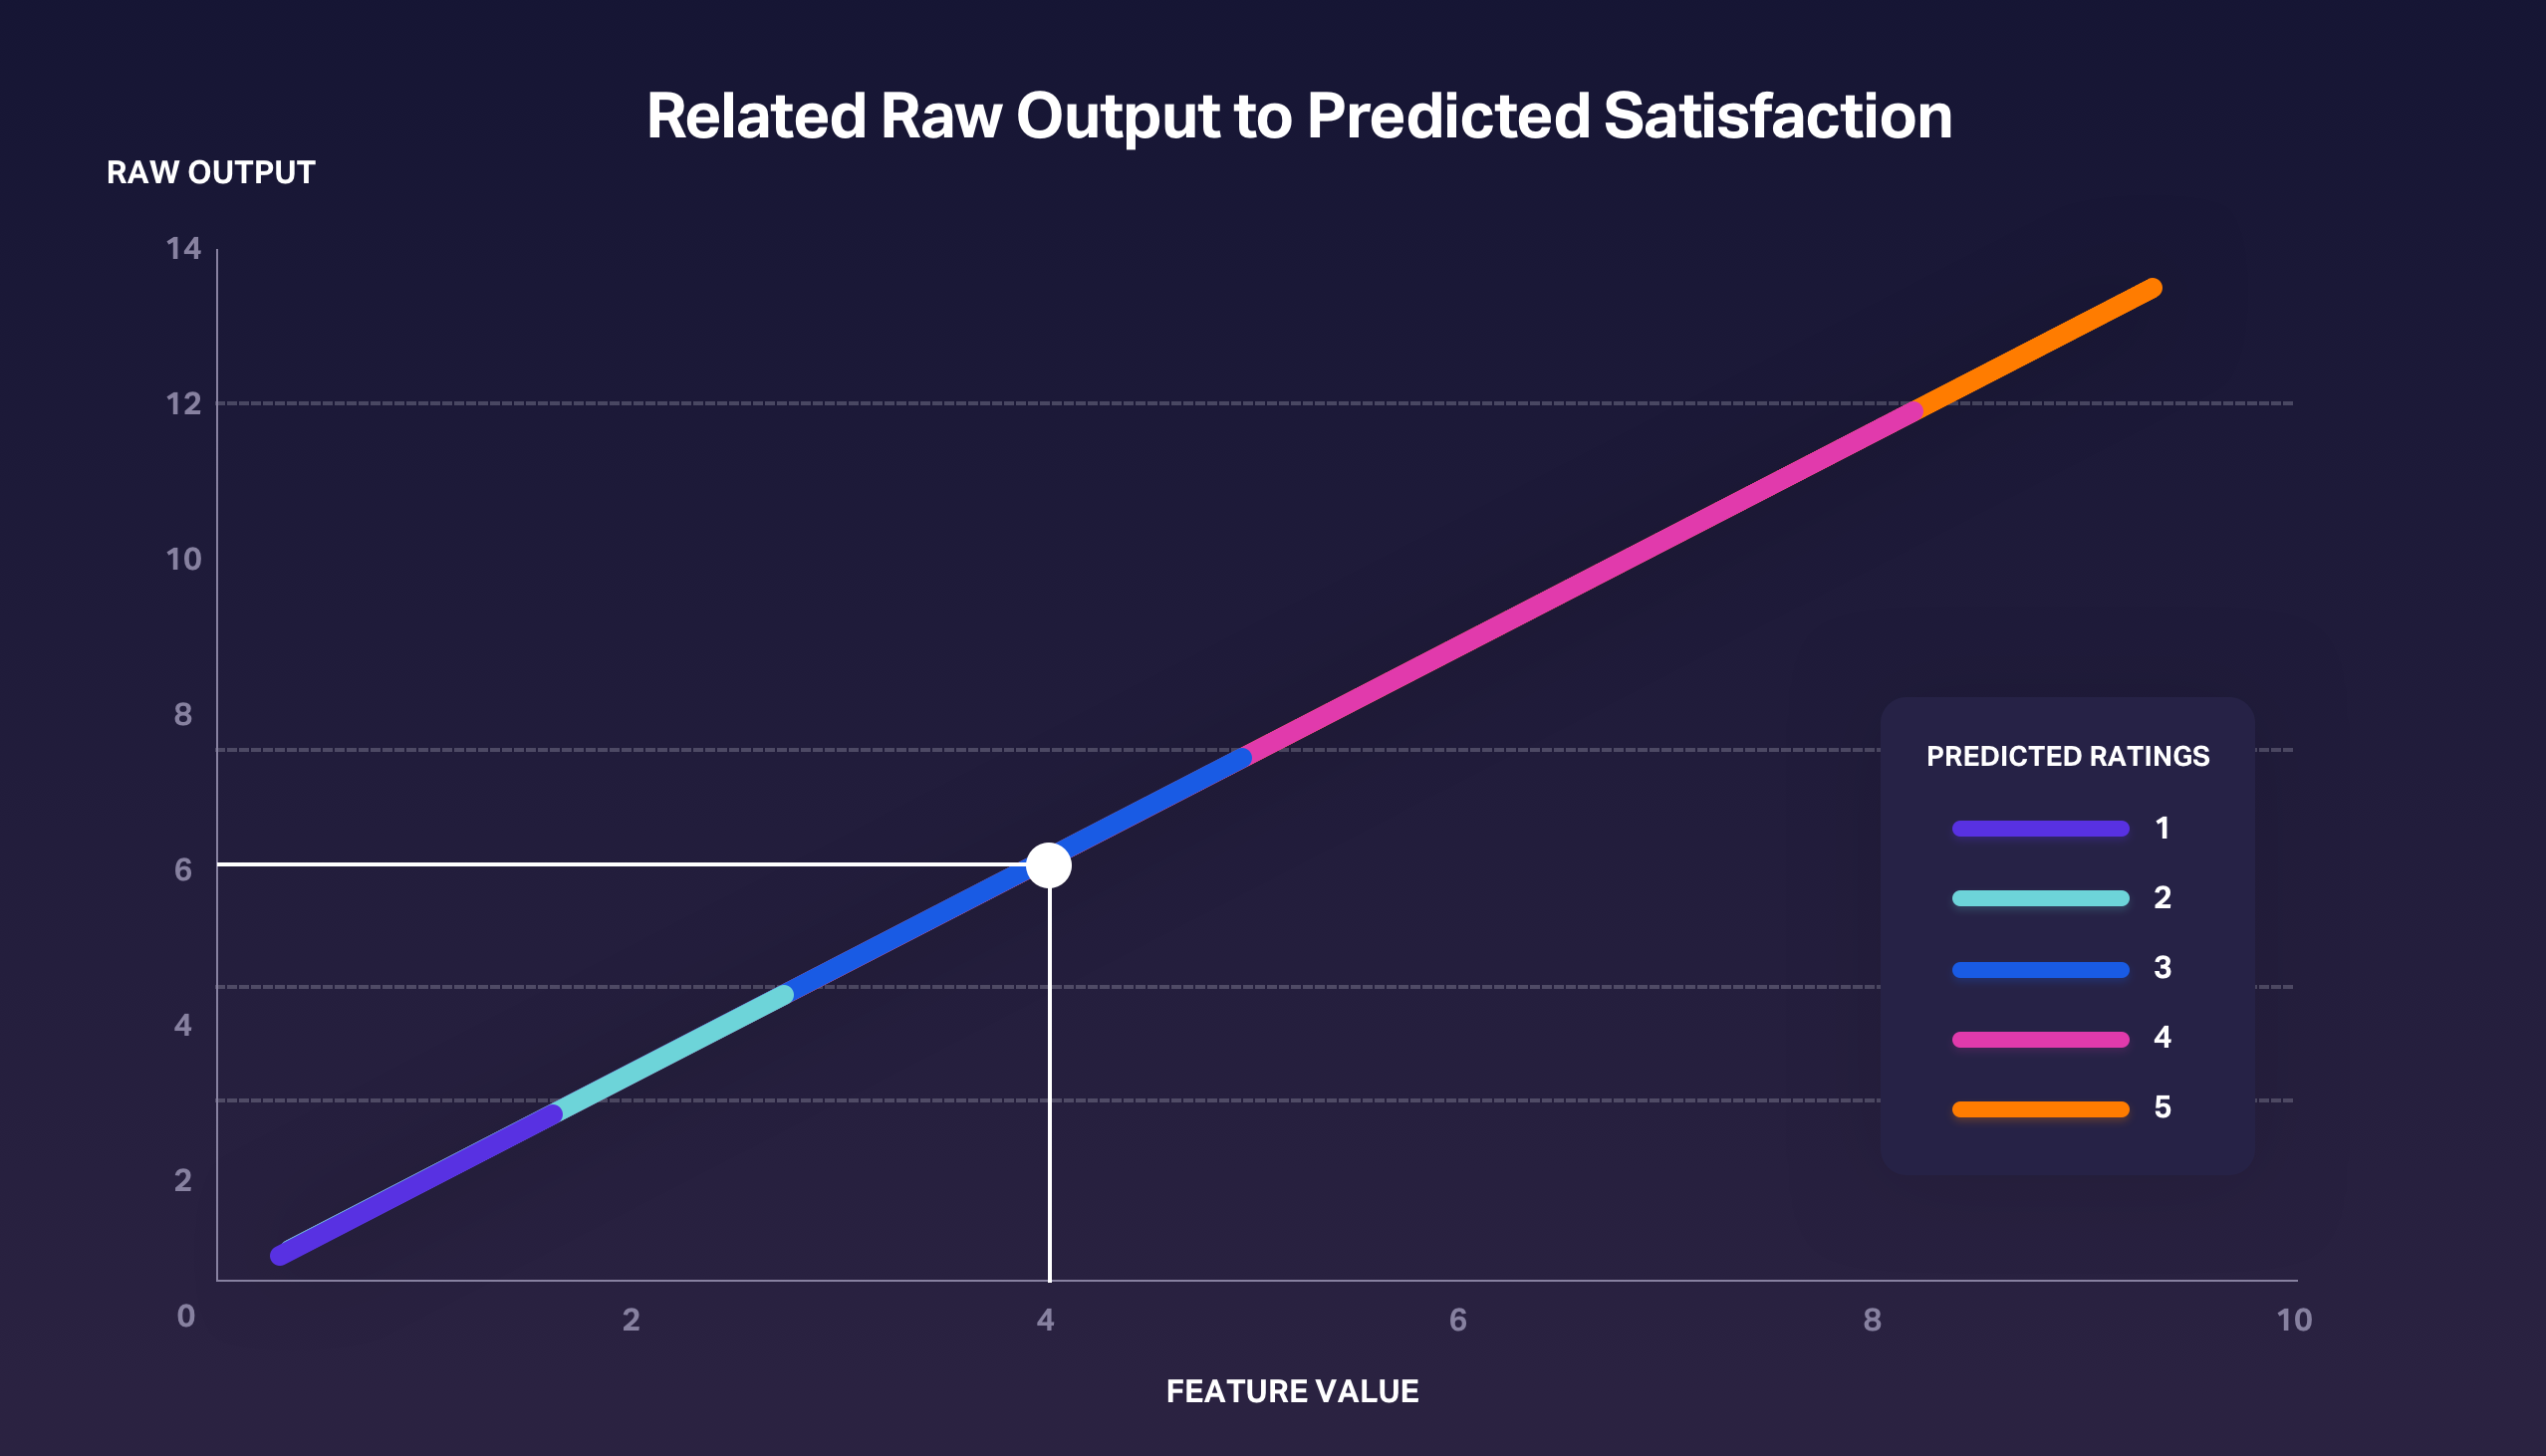 Relating raw output to predicted satisfaction